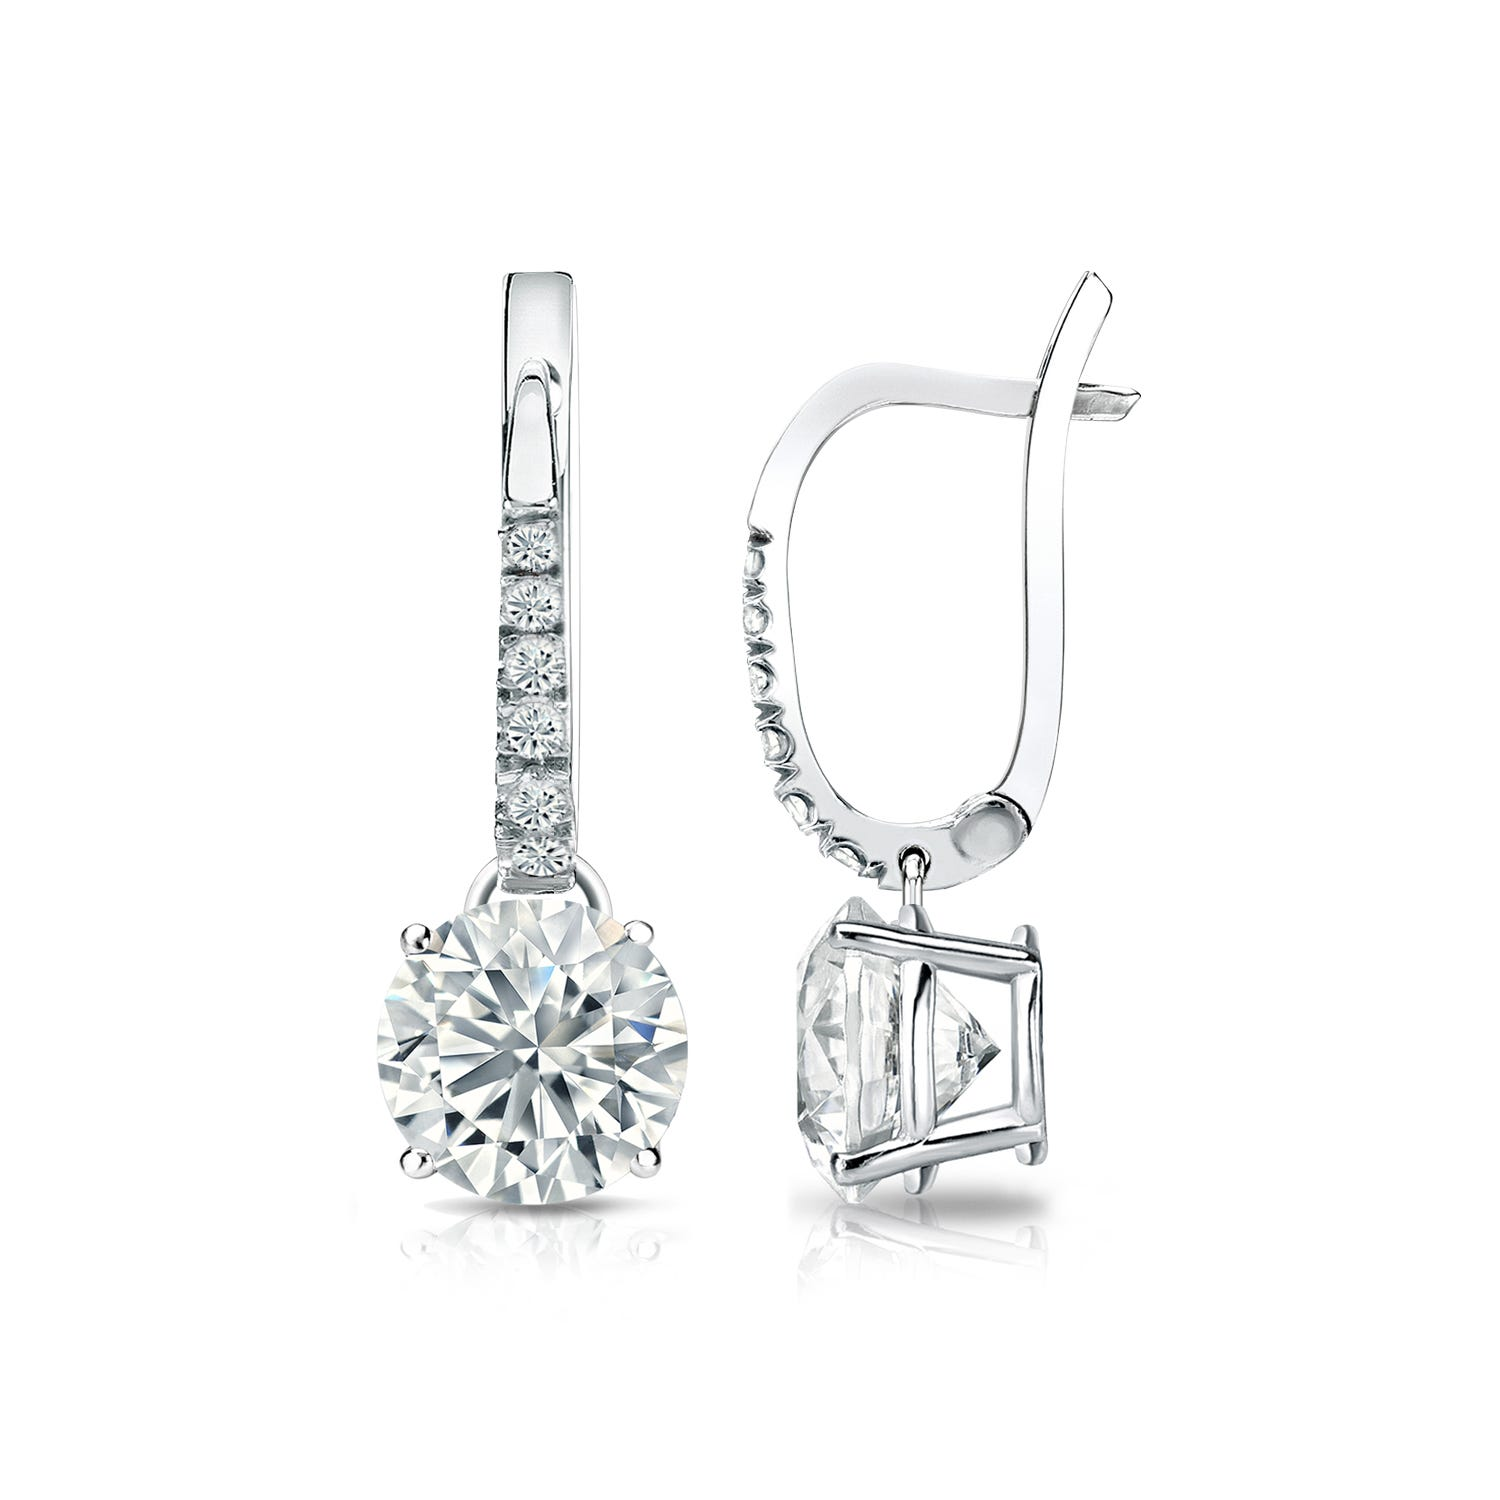 Diamond 1 1/2ctw. 4-Prong Round Drop Earrings in Platinum VS2 Clarity